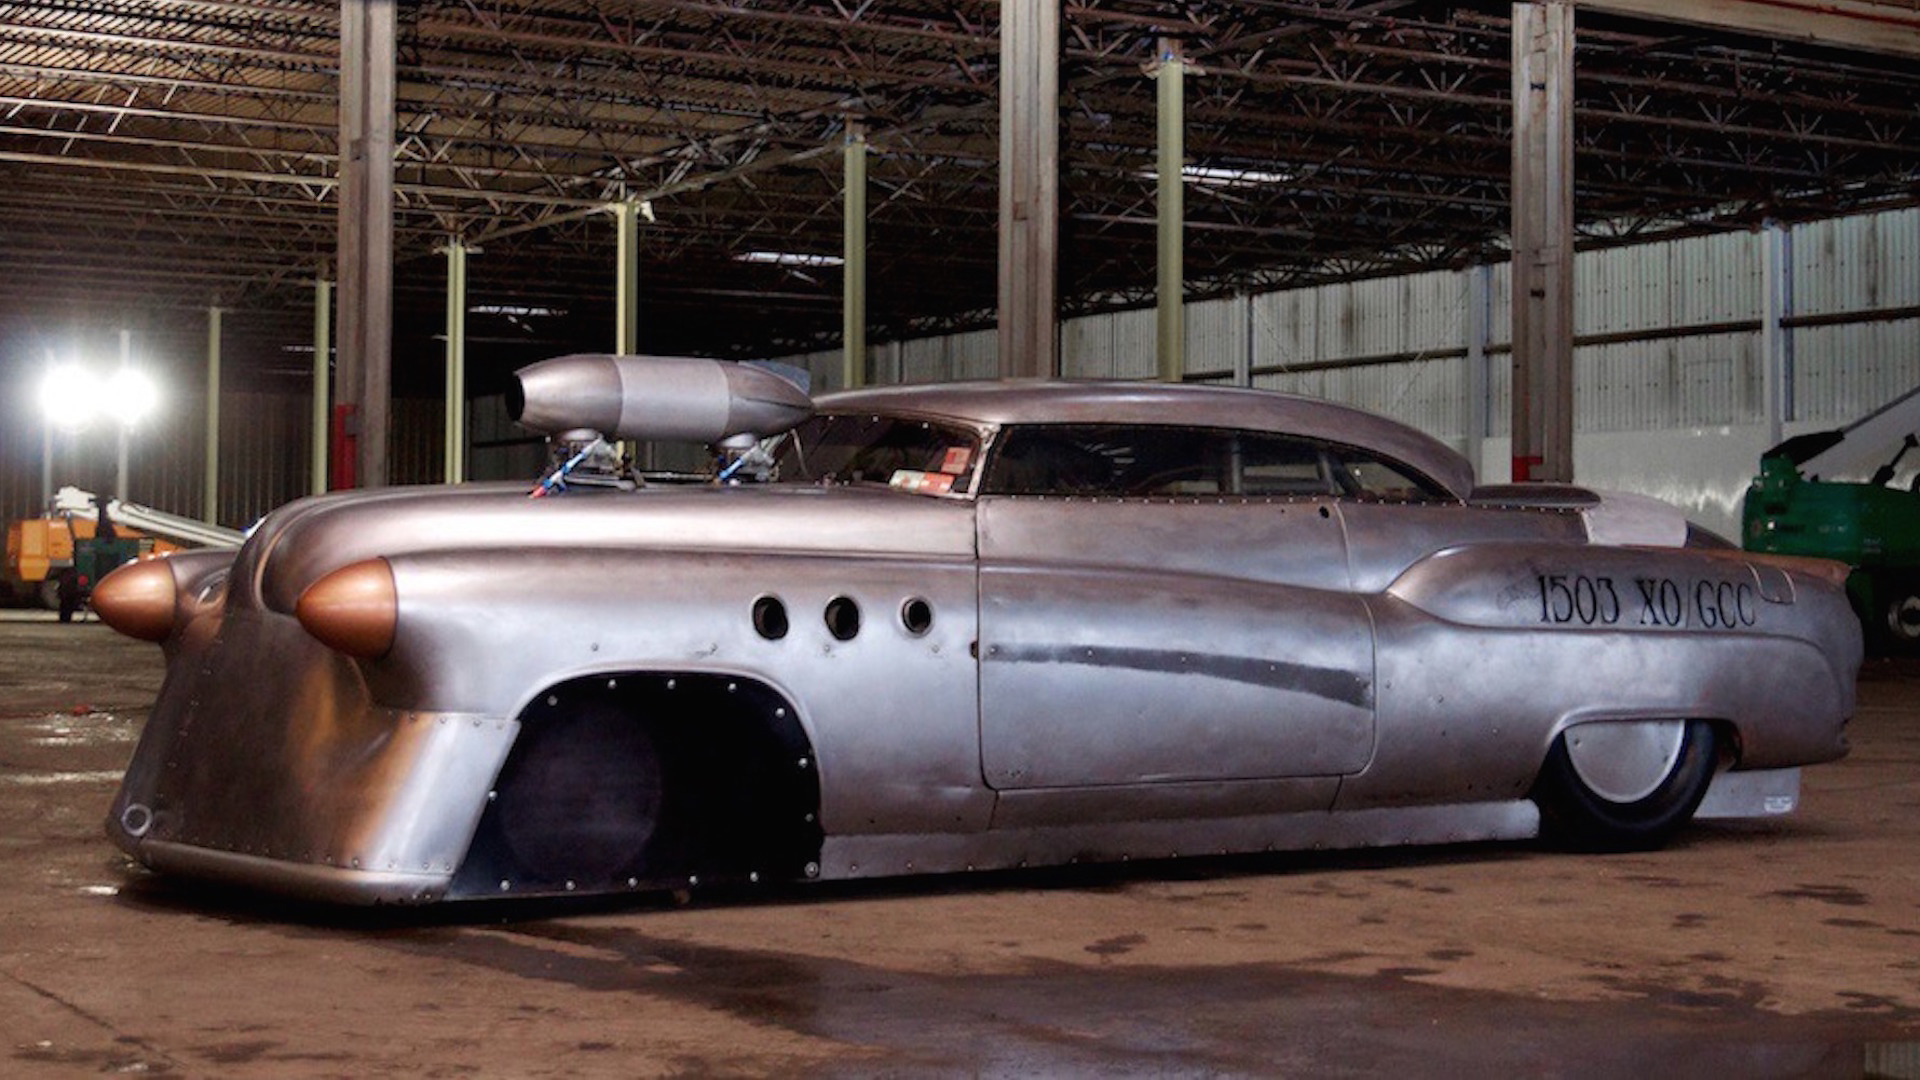 The legendary Bombshell Betty Buick needs a new home